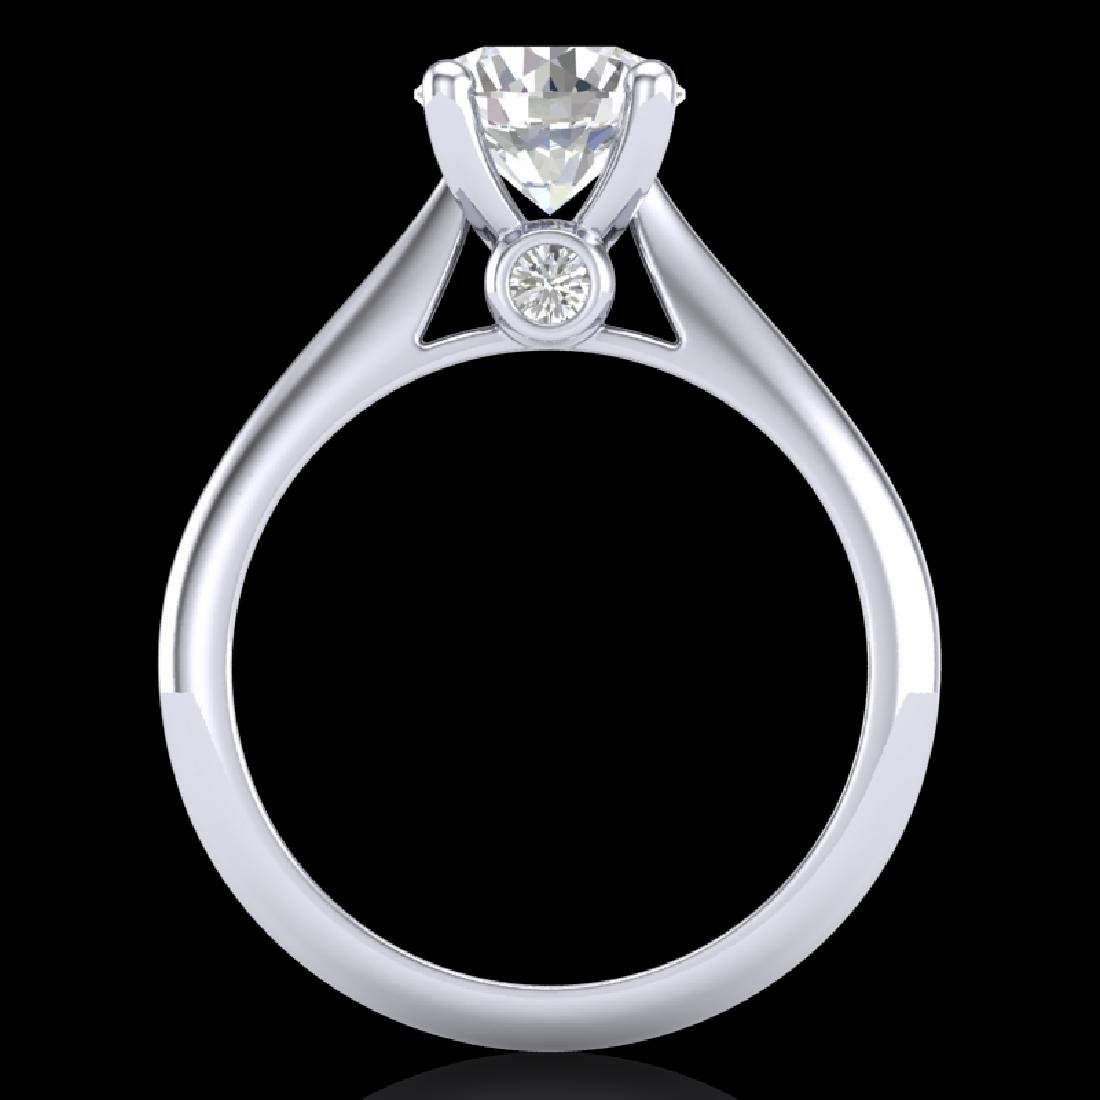 1.6 CTW VS/SI Diamond Art Deco Ring 18K White Gold - 3